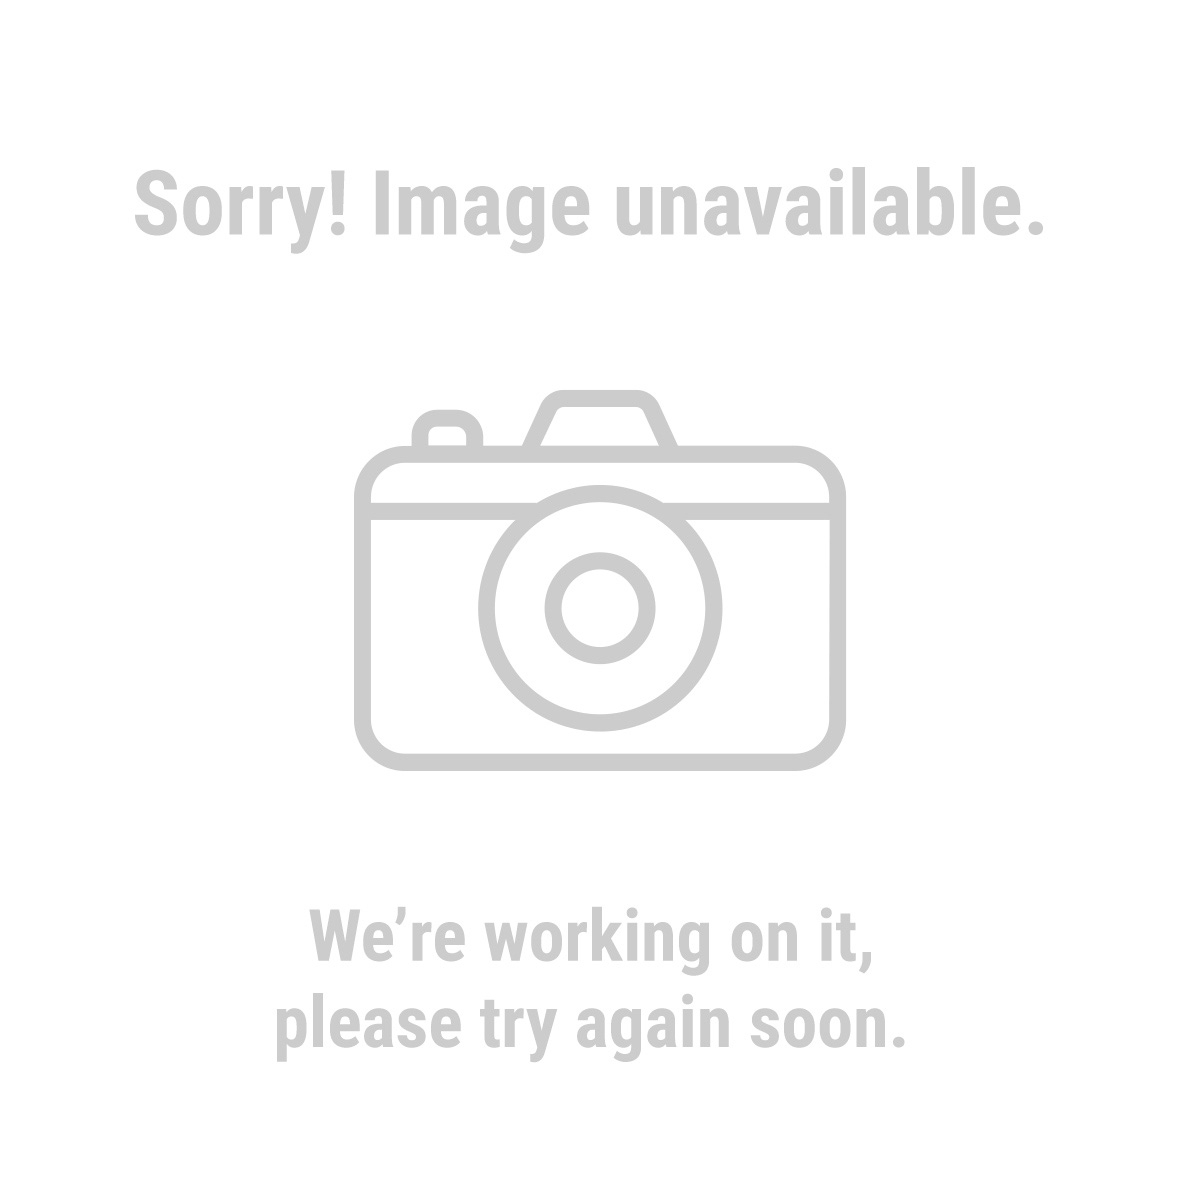 382 Piece O-Ring Assortment